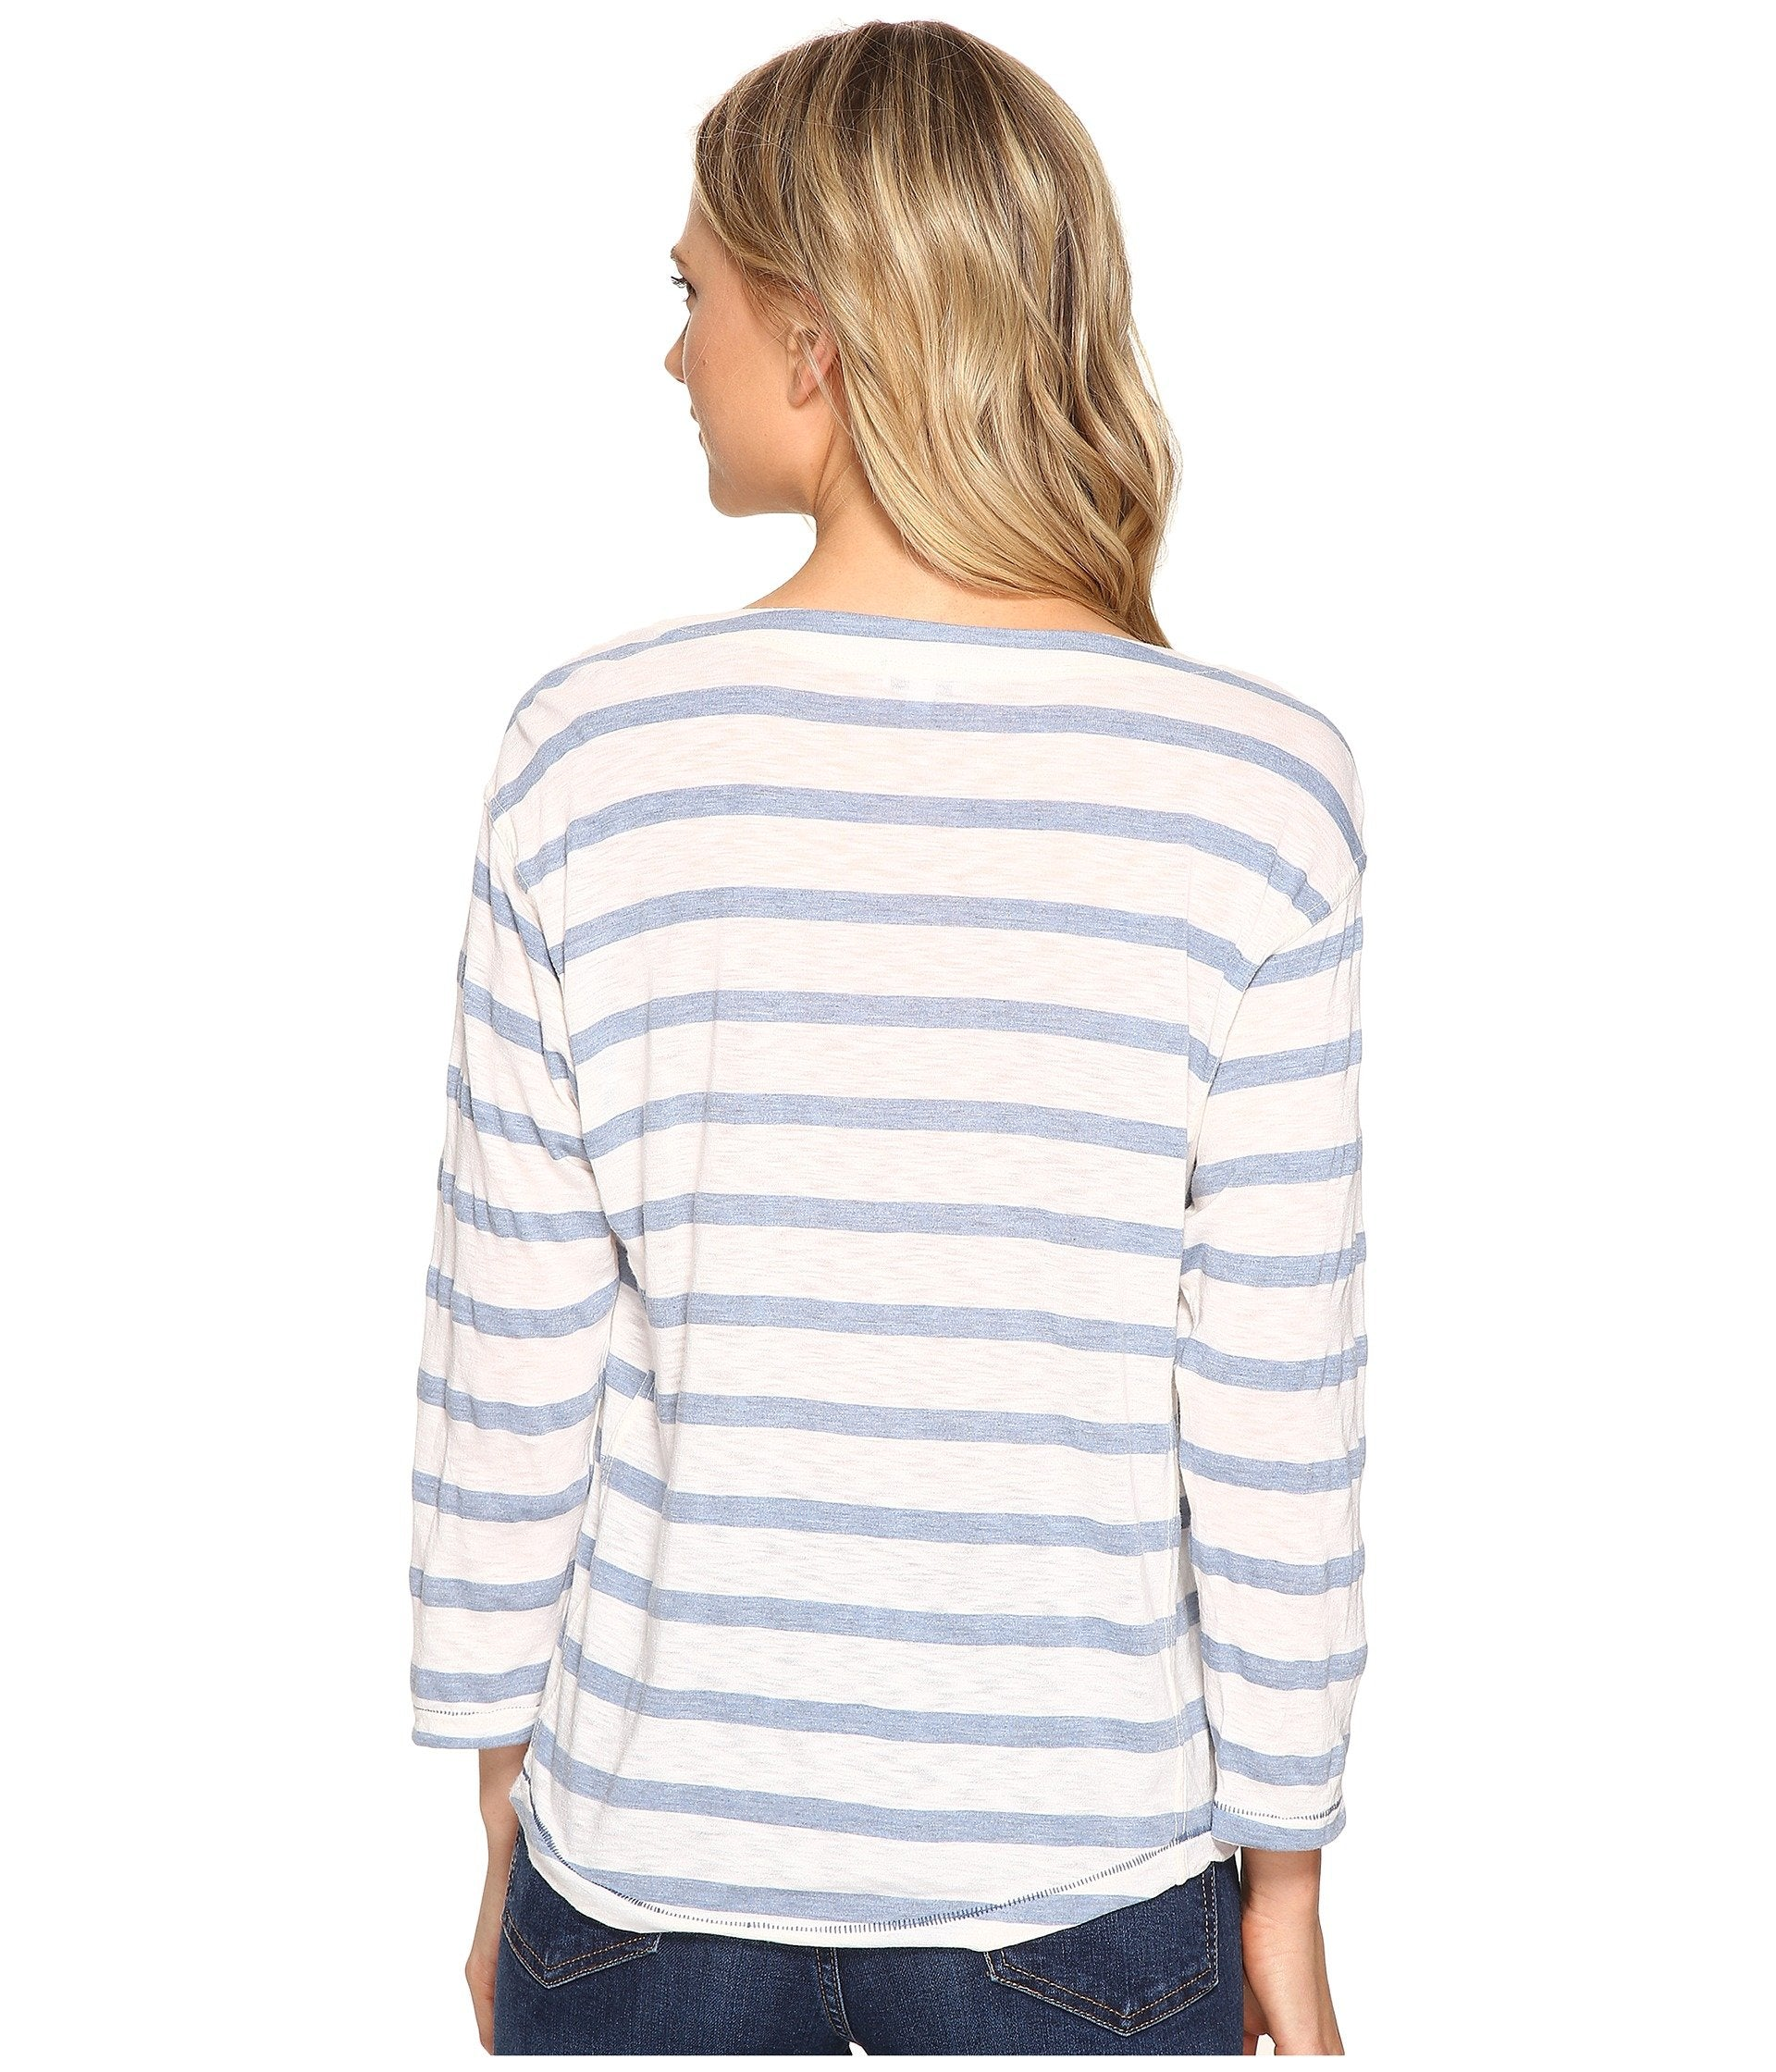 Cliffbrook Melange Lace-Up Top